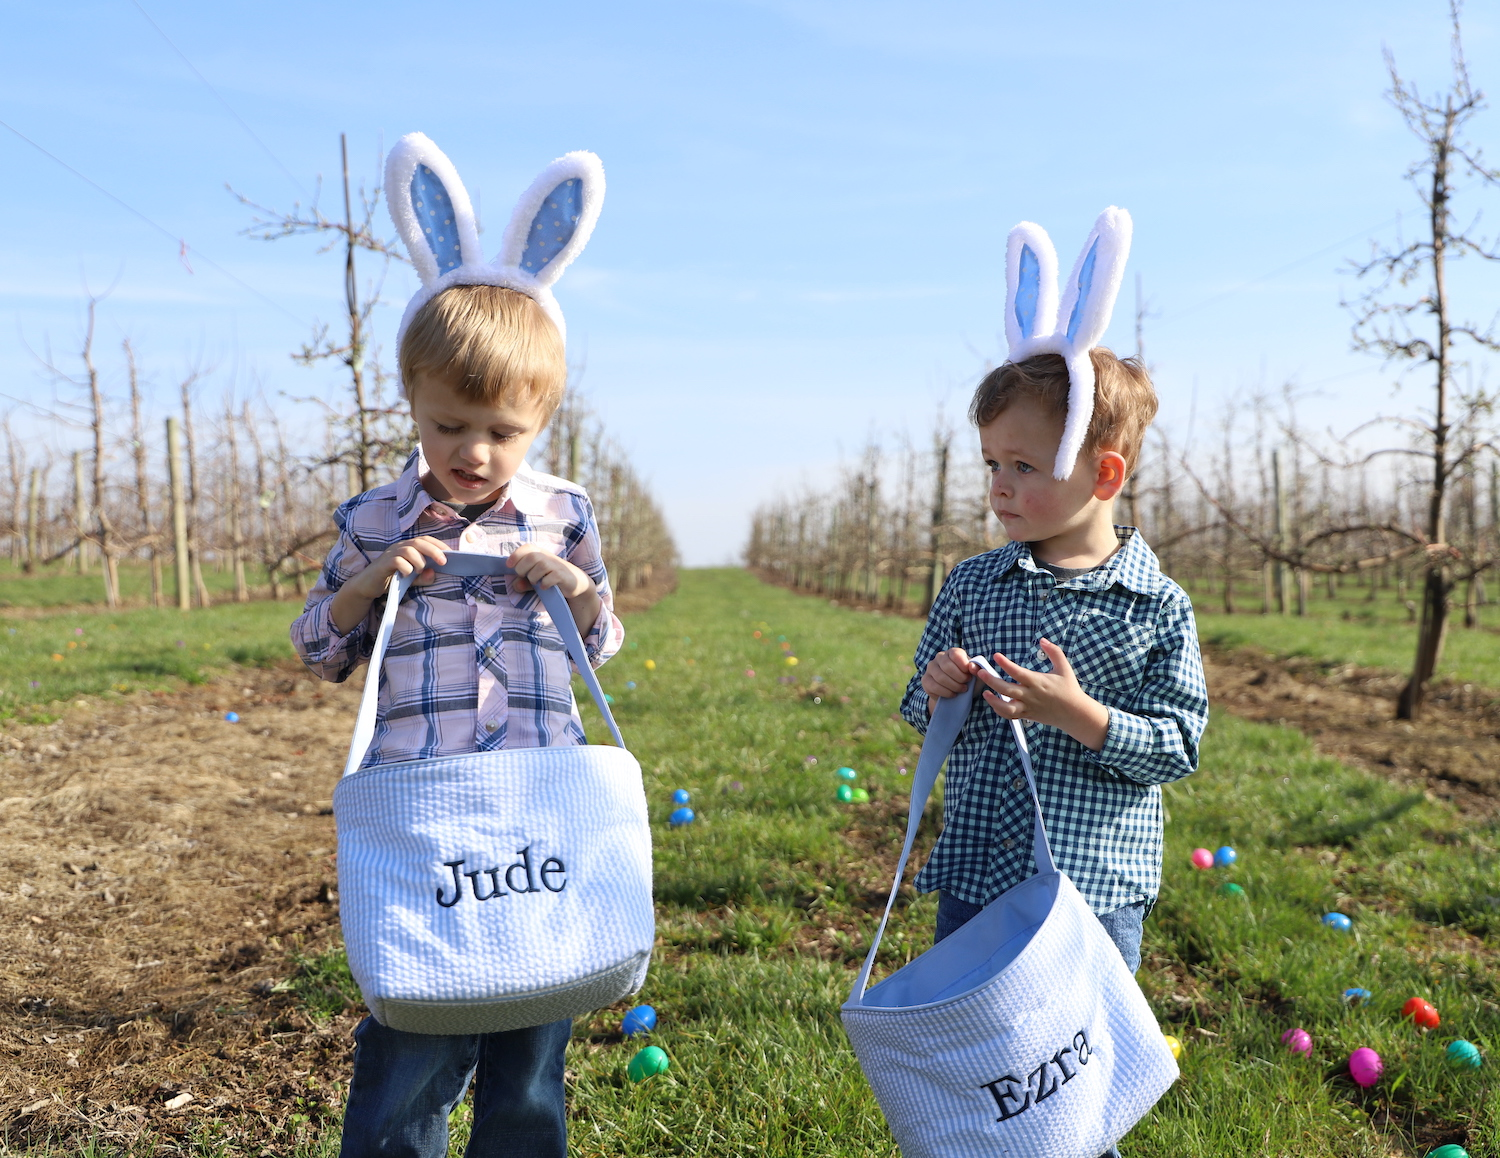 Personalized Easter Bunnies and Baskets from Peekawhoo - A must have for any Easter gift basket! By Liz of lizrotz.com